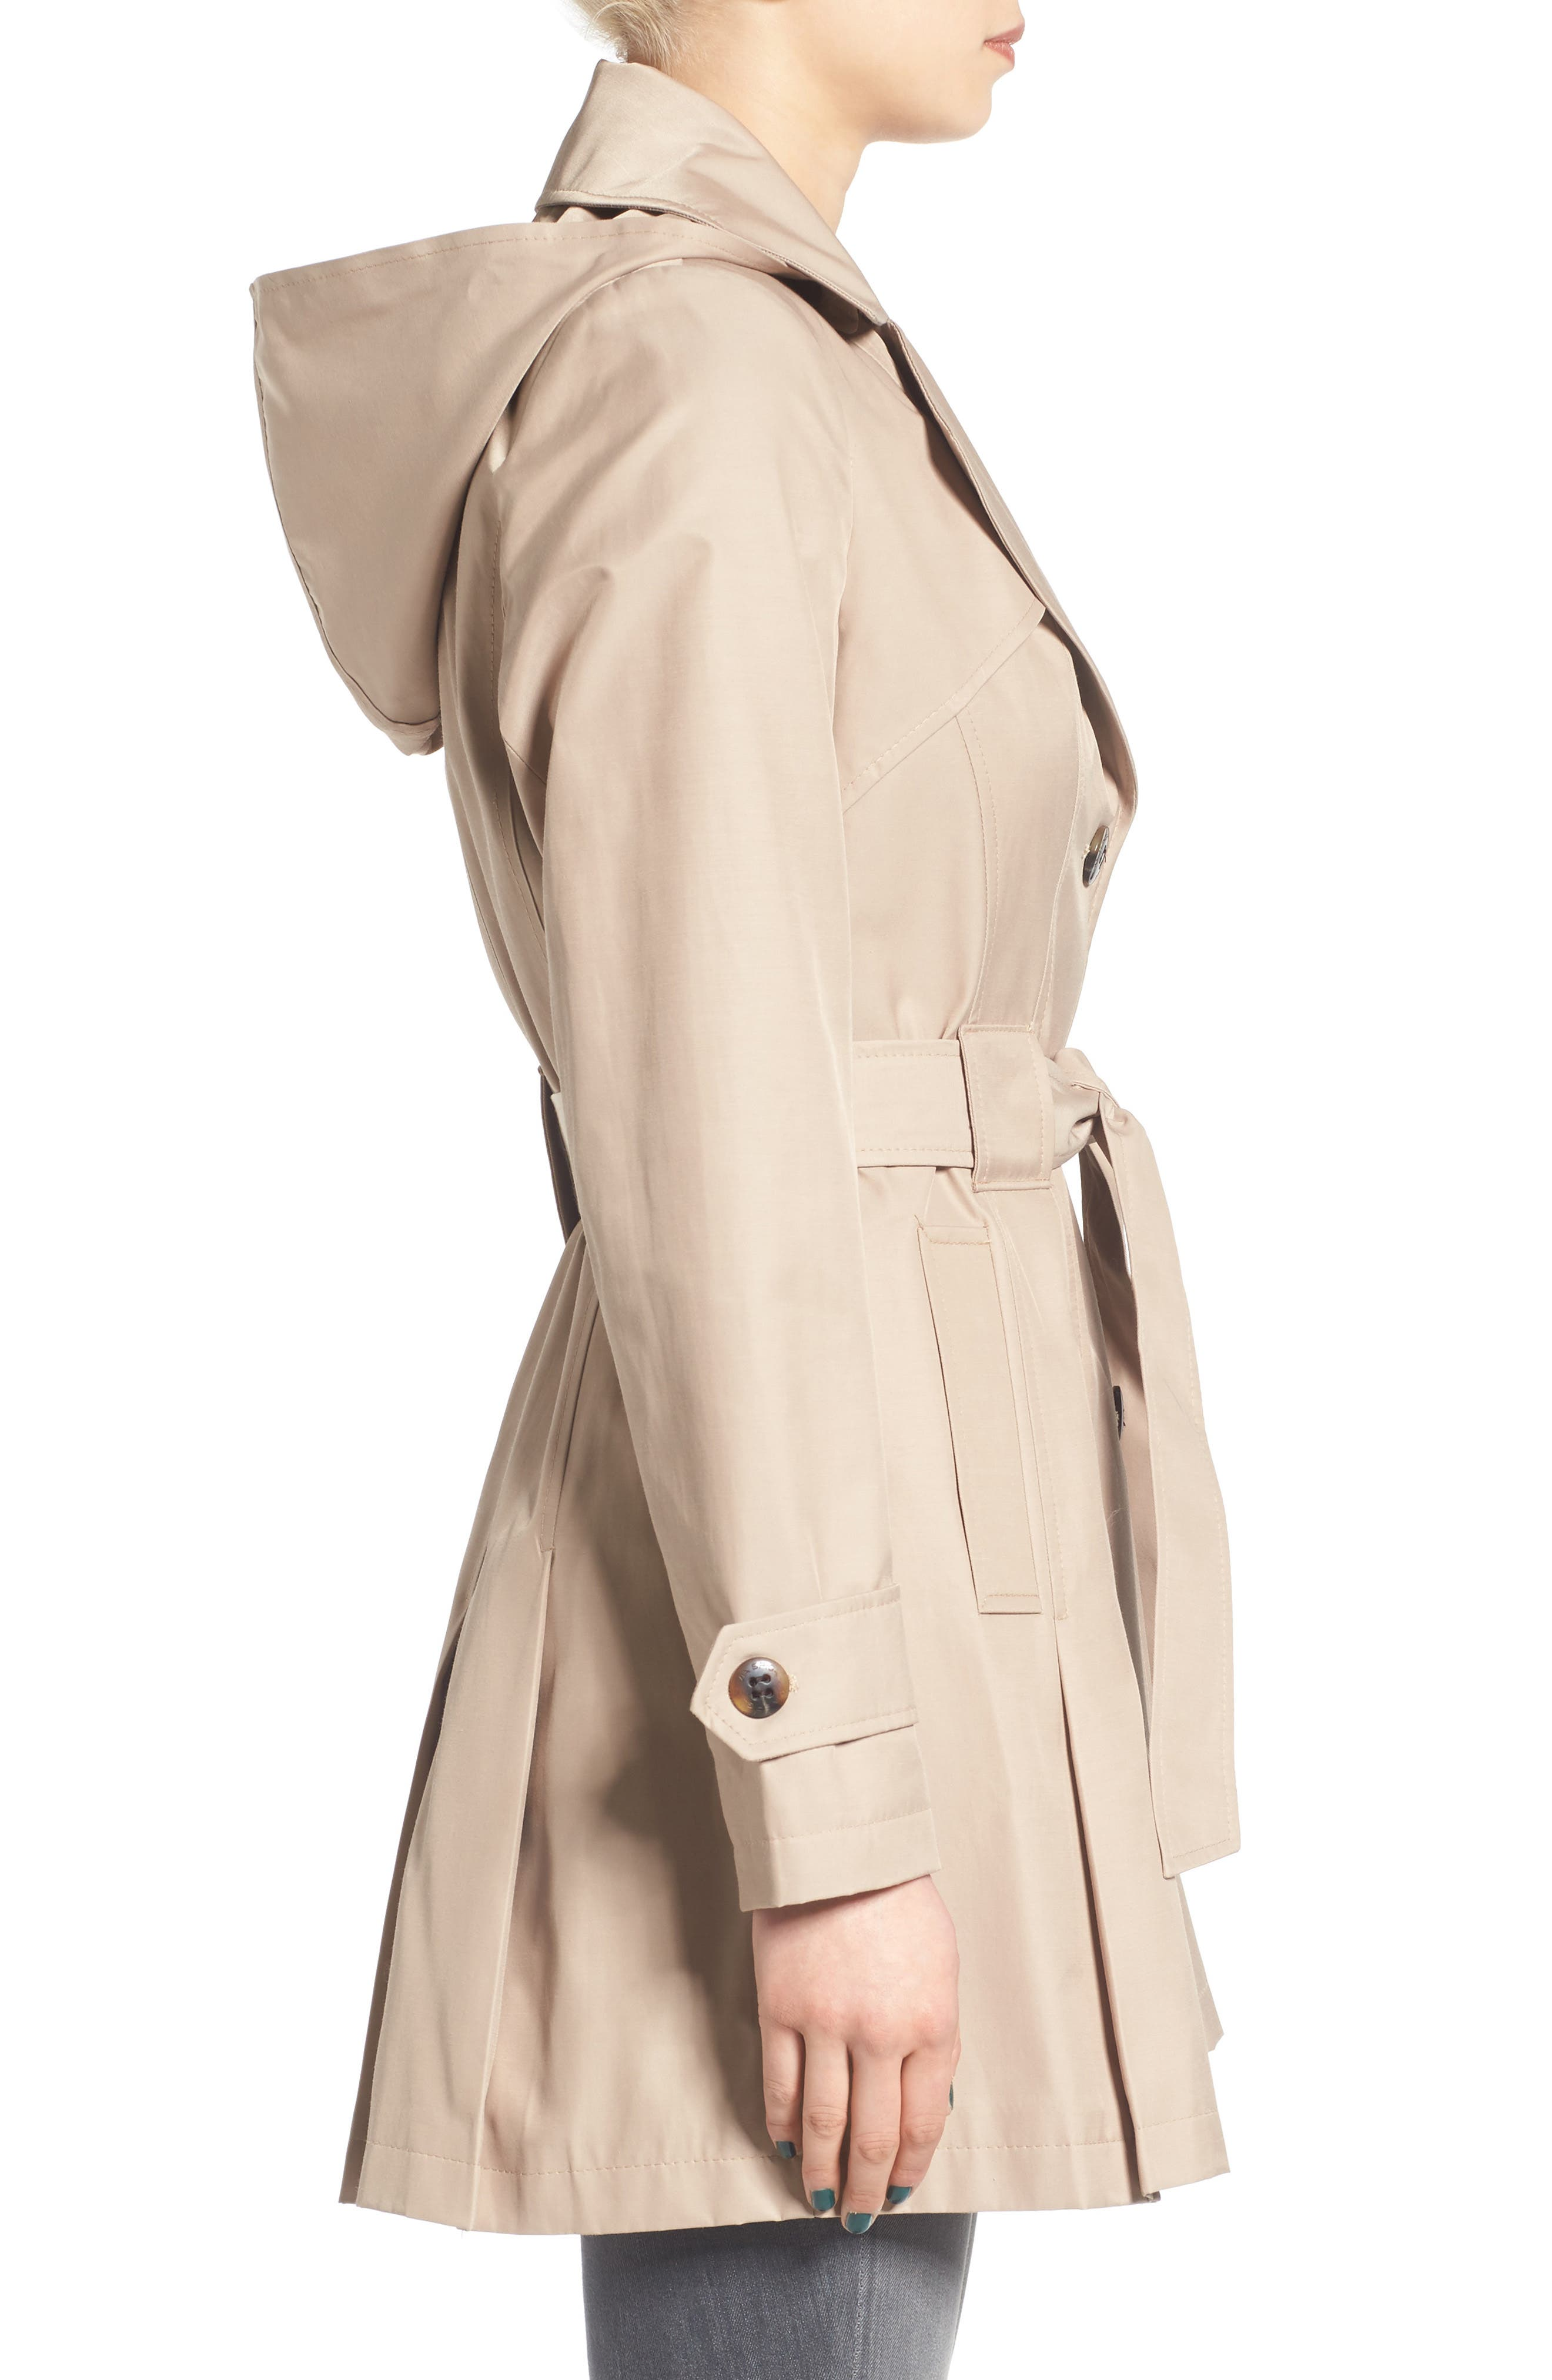 'Scarpa' Hooded Single Breasted Trench Coat,                             Alternate thumbnail 3, color,                             257